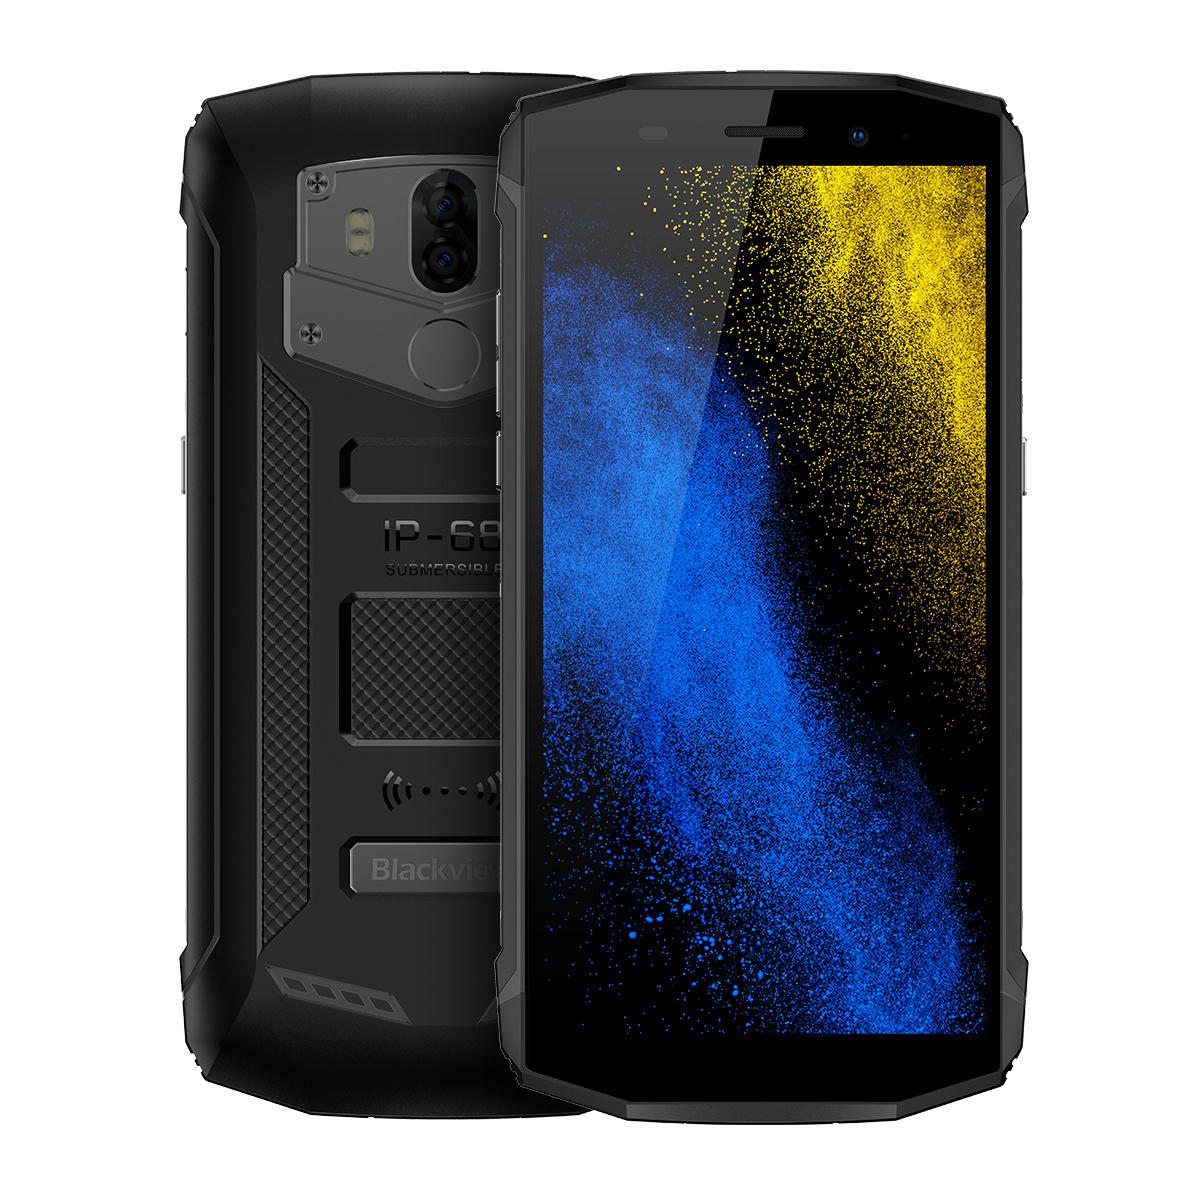 Blackview BV5800 Pro 5.5 Inch IP68 Android 8.1 Wireless Charging 2GB RAM 16GB ROM MT6739 Smartphone